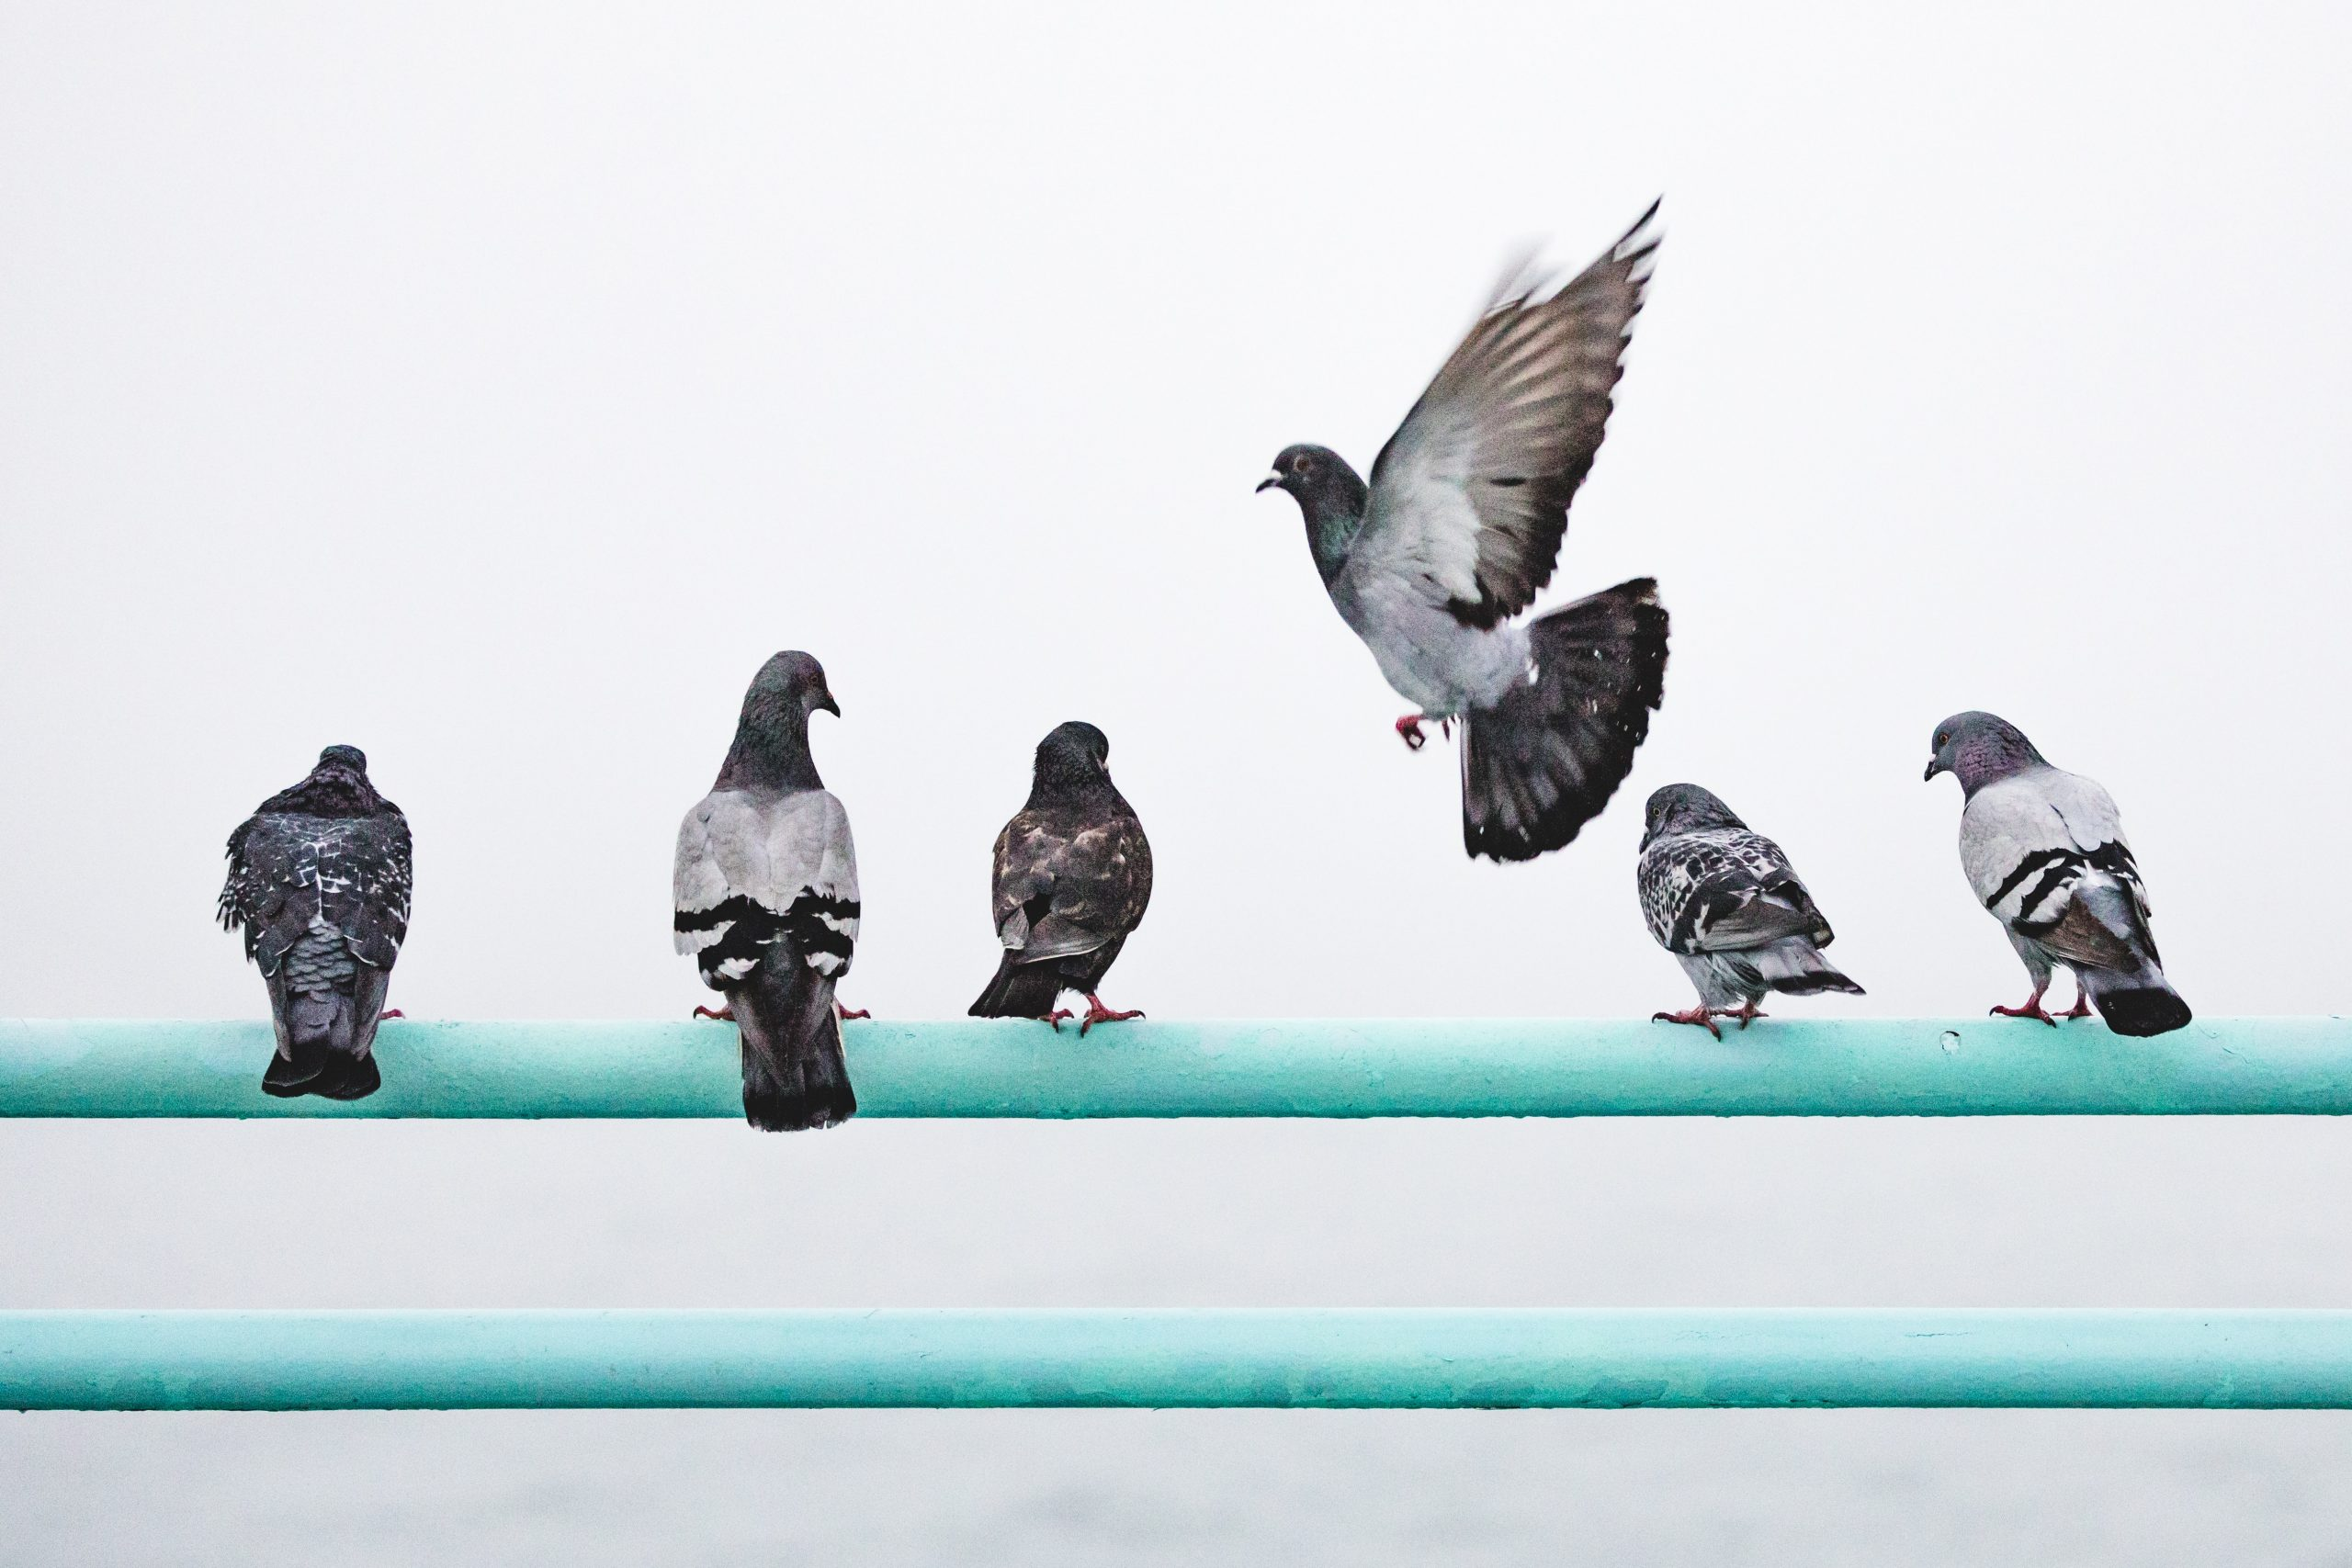 A flight of pigeons overlooking a grey sky